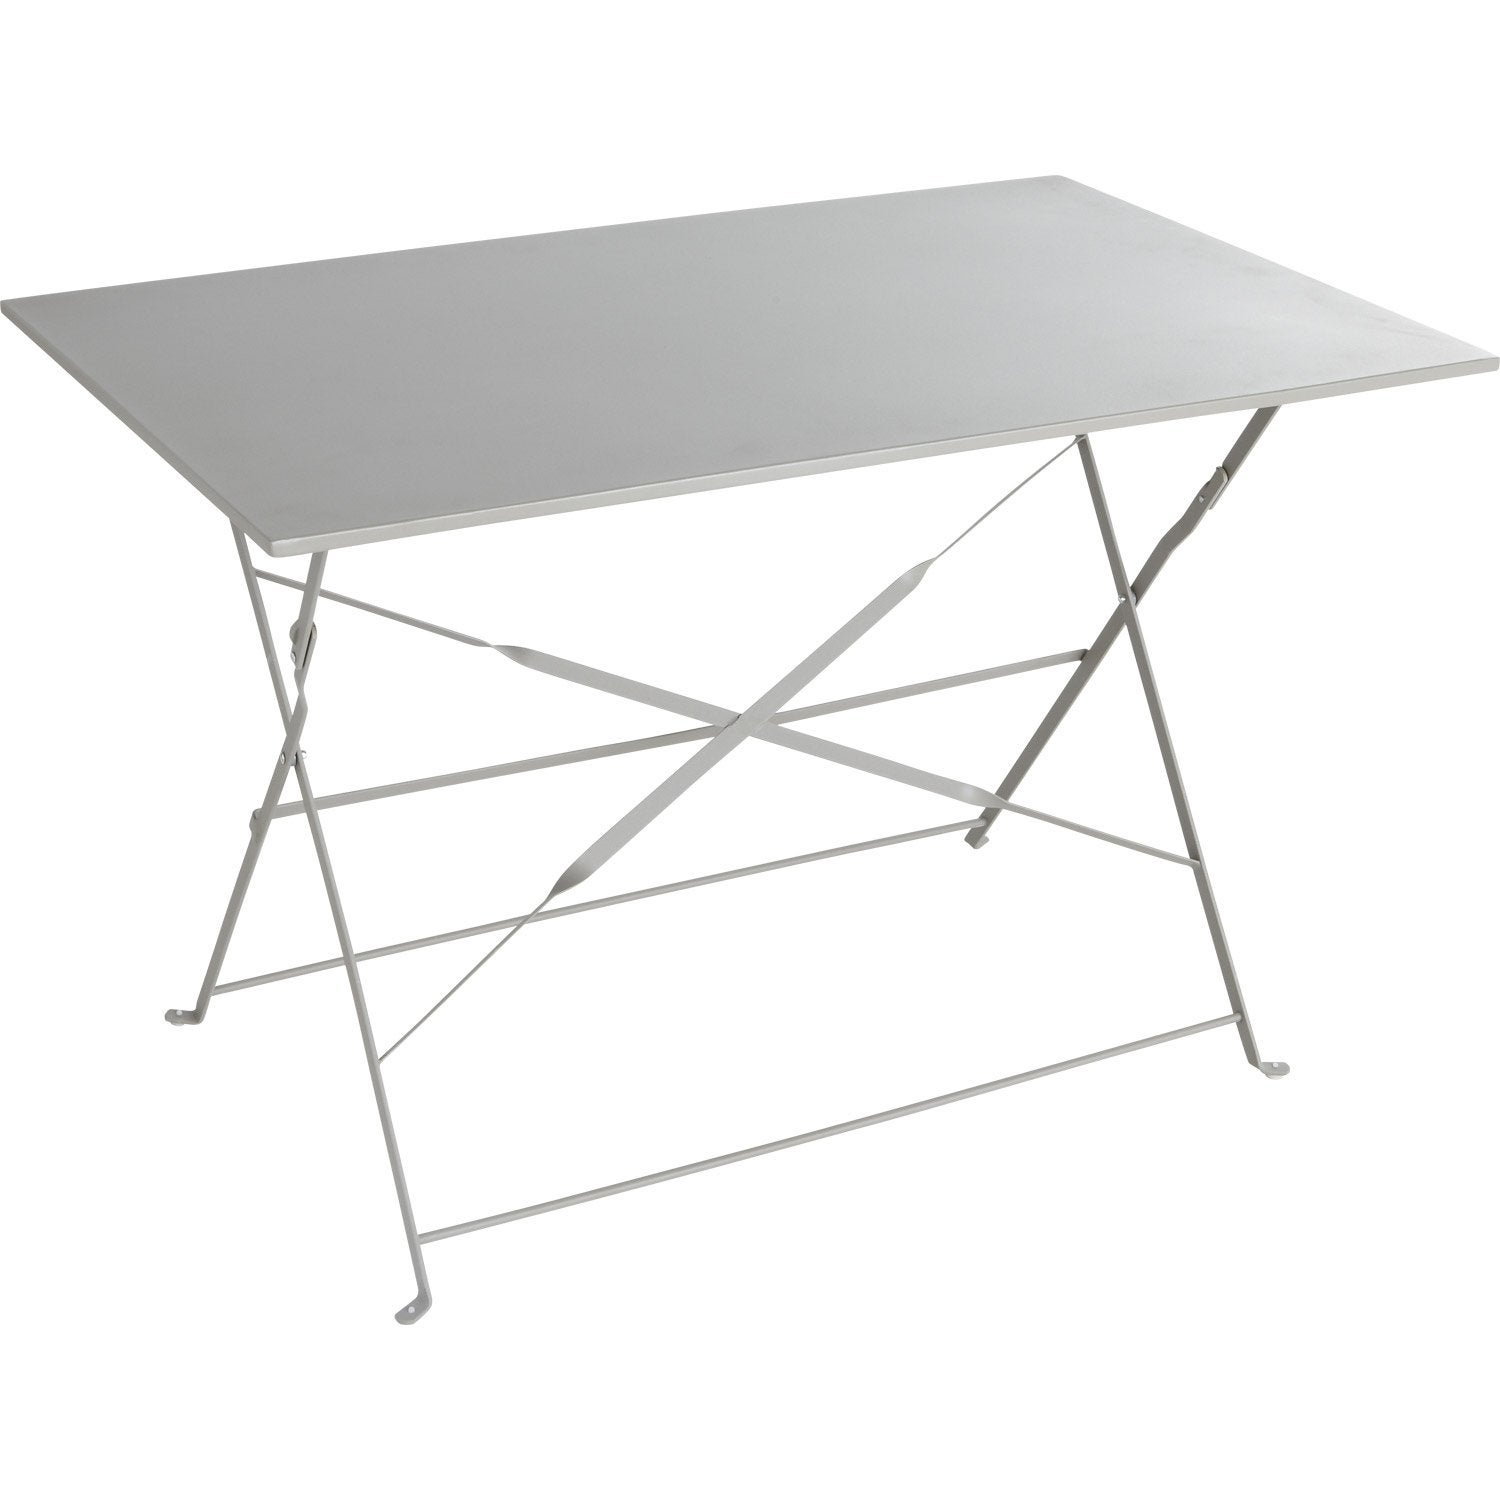 Table de jardin naterial flore rectangulaire gris 4 for Table pliante 4 personnes